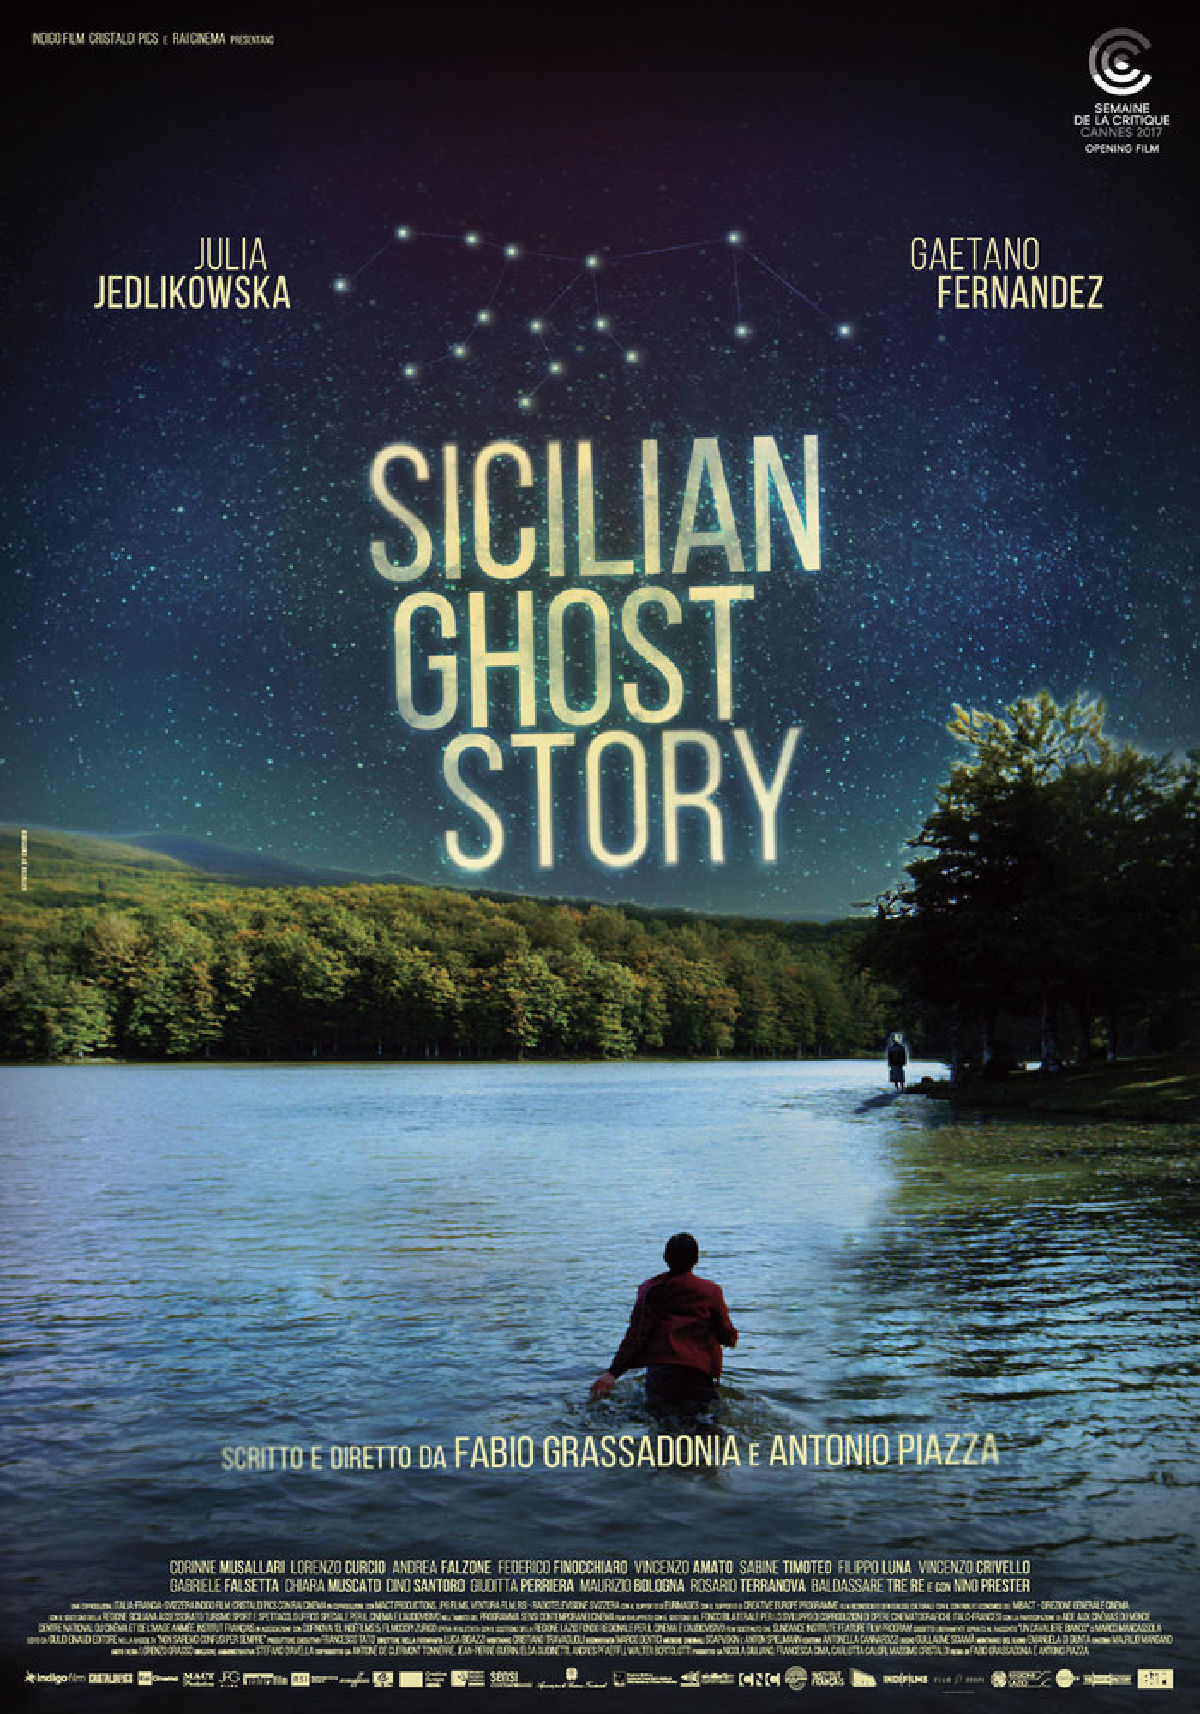 'Sicilian Ghost Story' movie poster